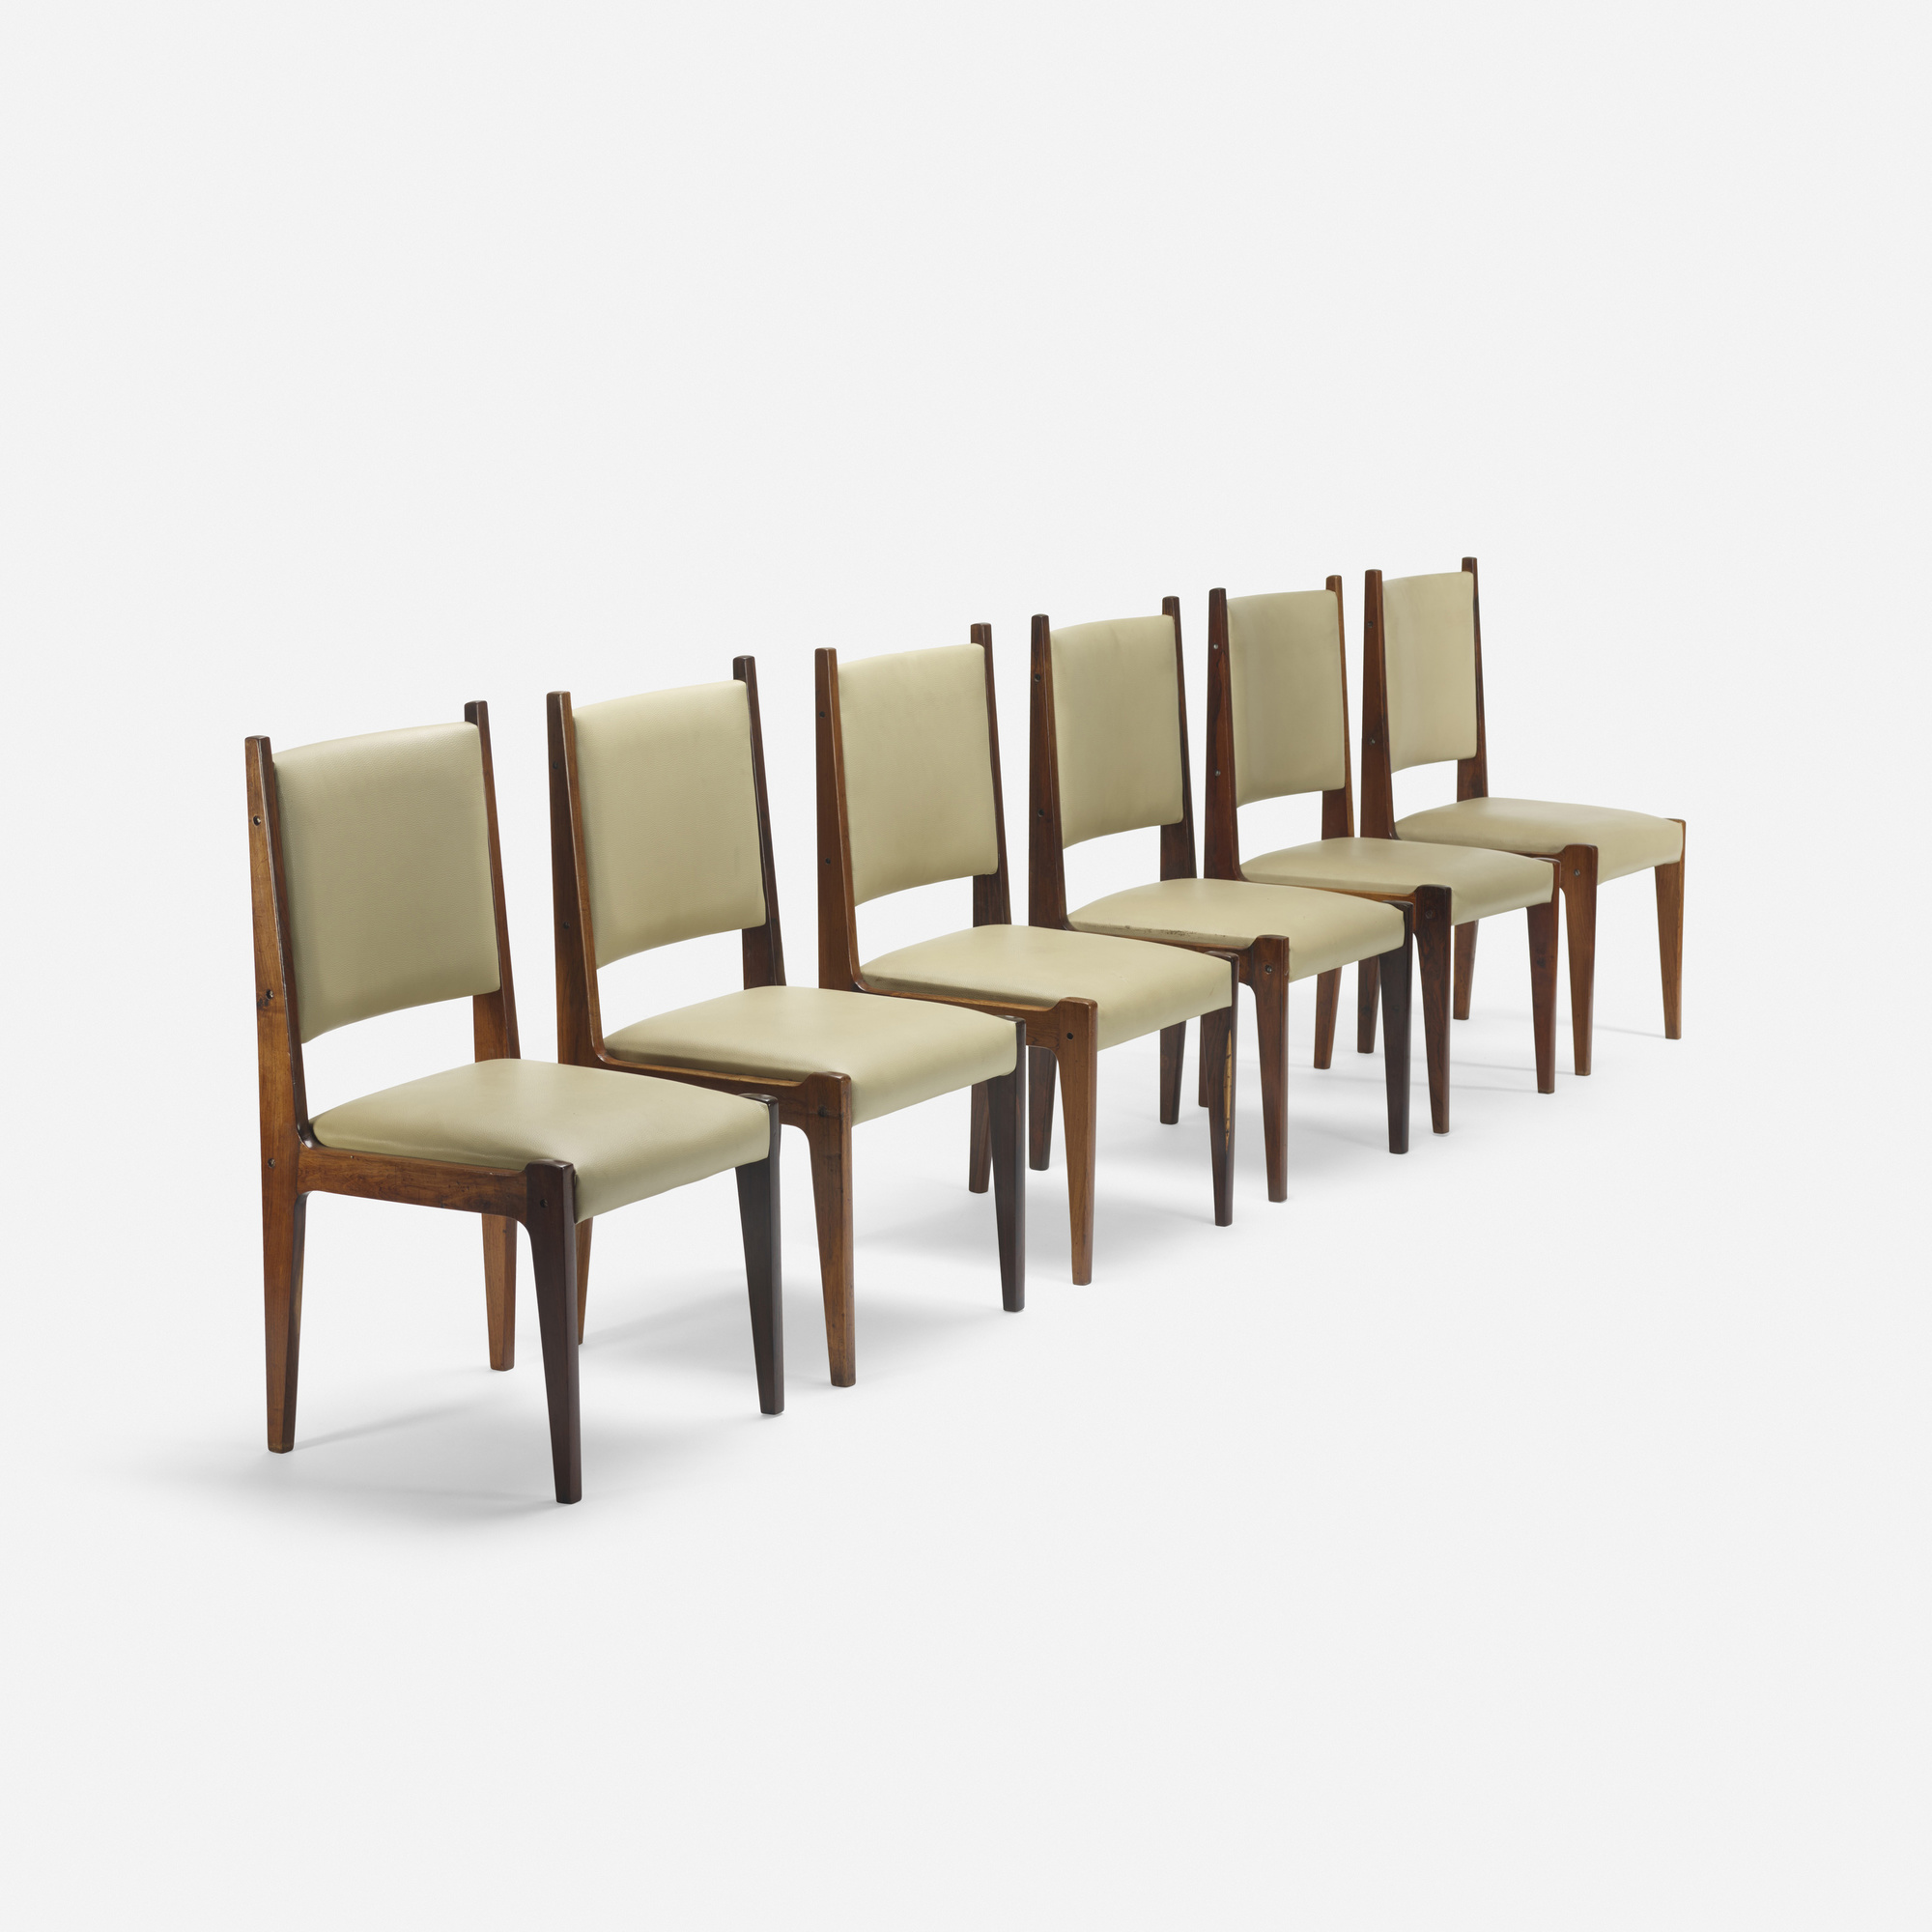 179: Sergio Rodrigues / dining chairs, set of six (2 of 2)